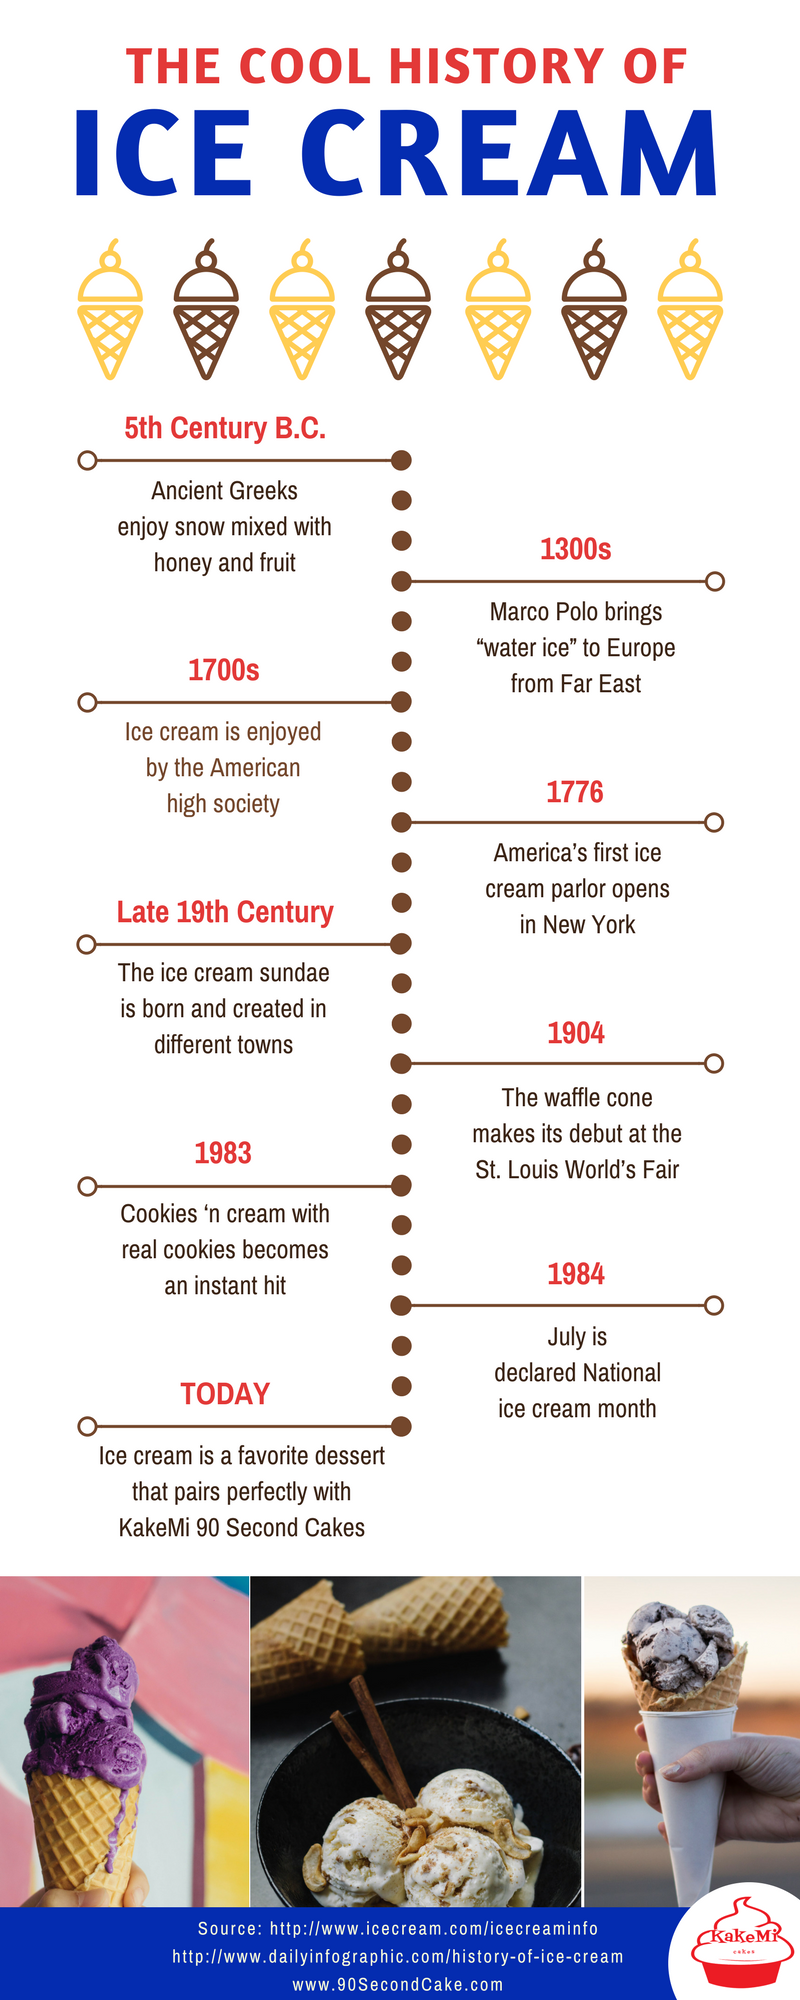 The cool history of ice cream